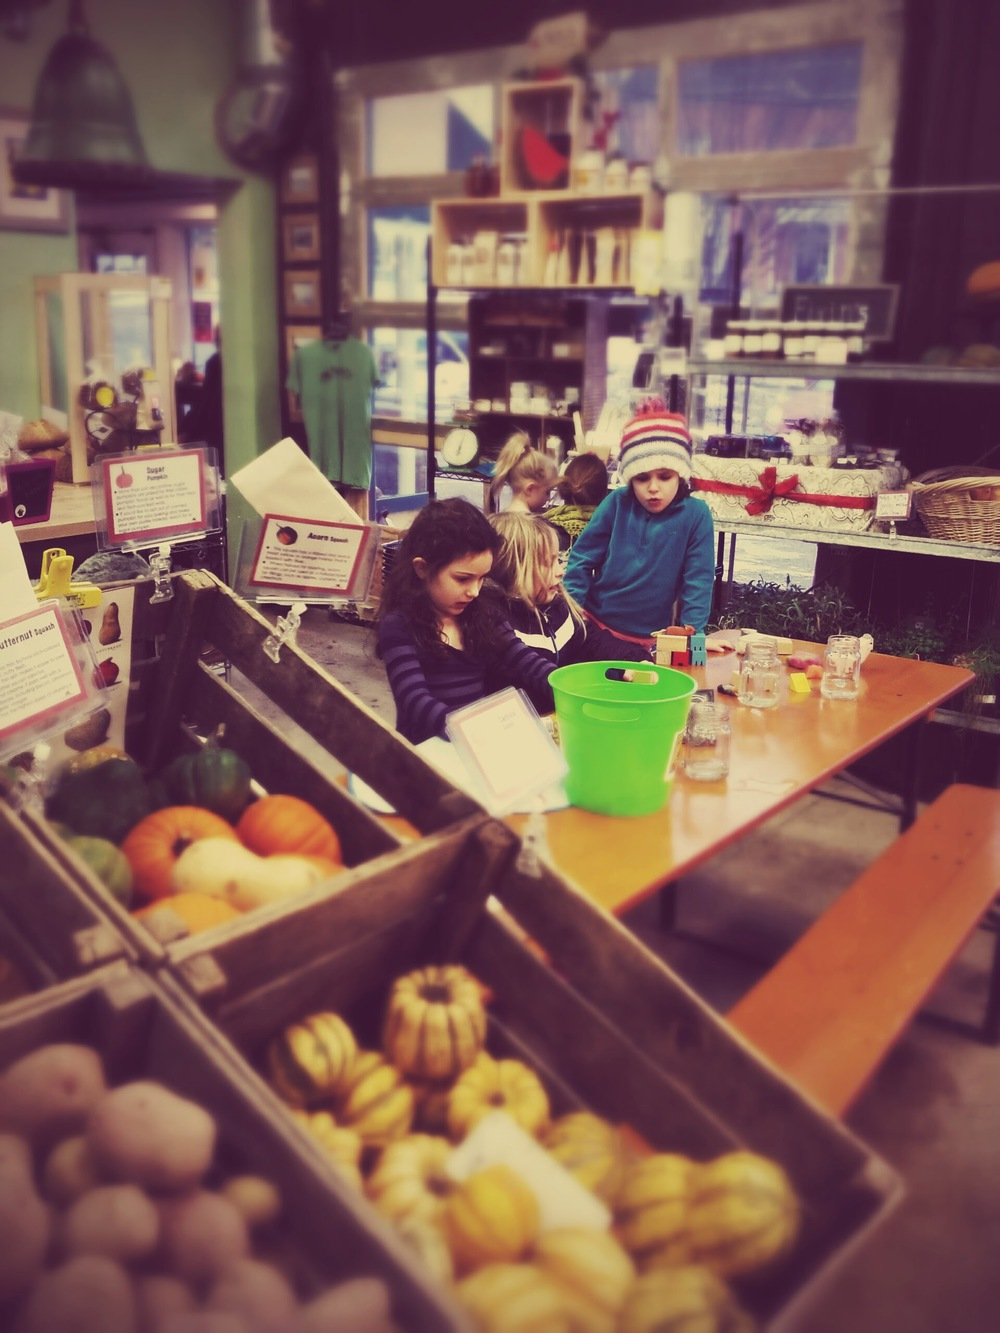 This is not your ordinary grocery. At Argus Farm, the people, farmers and food are all local. Here my daughter Jane plays with her friends Cora and Amelia. Living proof showing how local farm stops can build community and happiness.